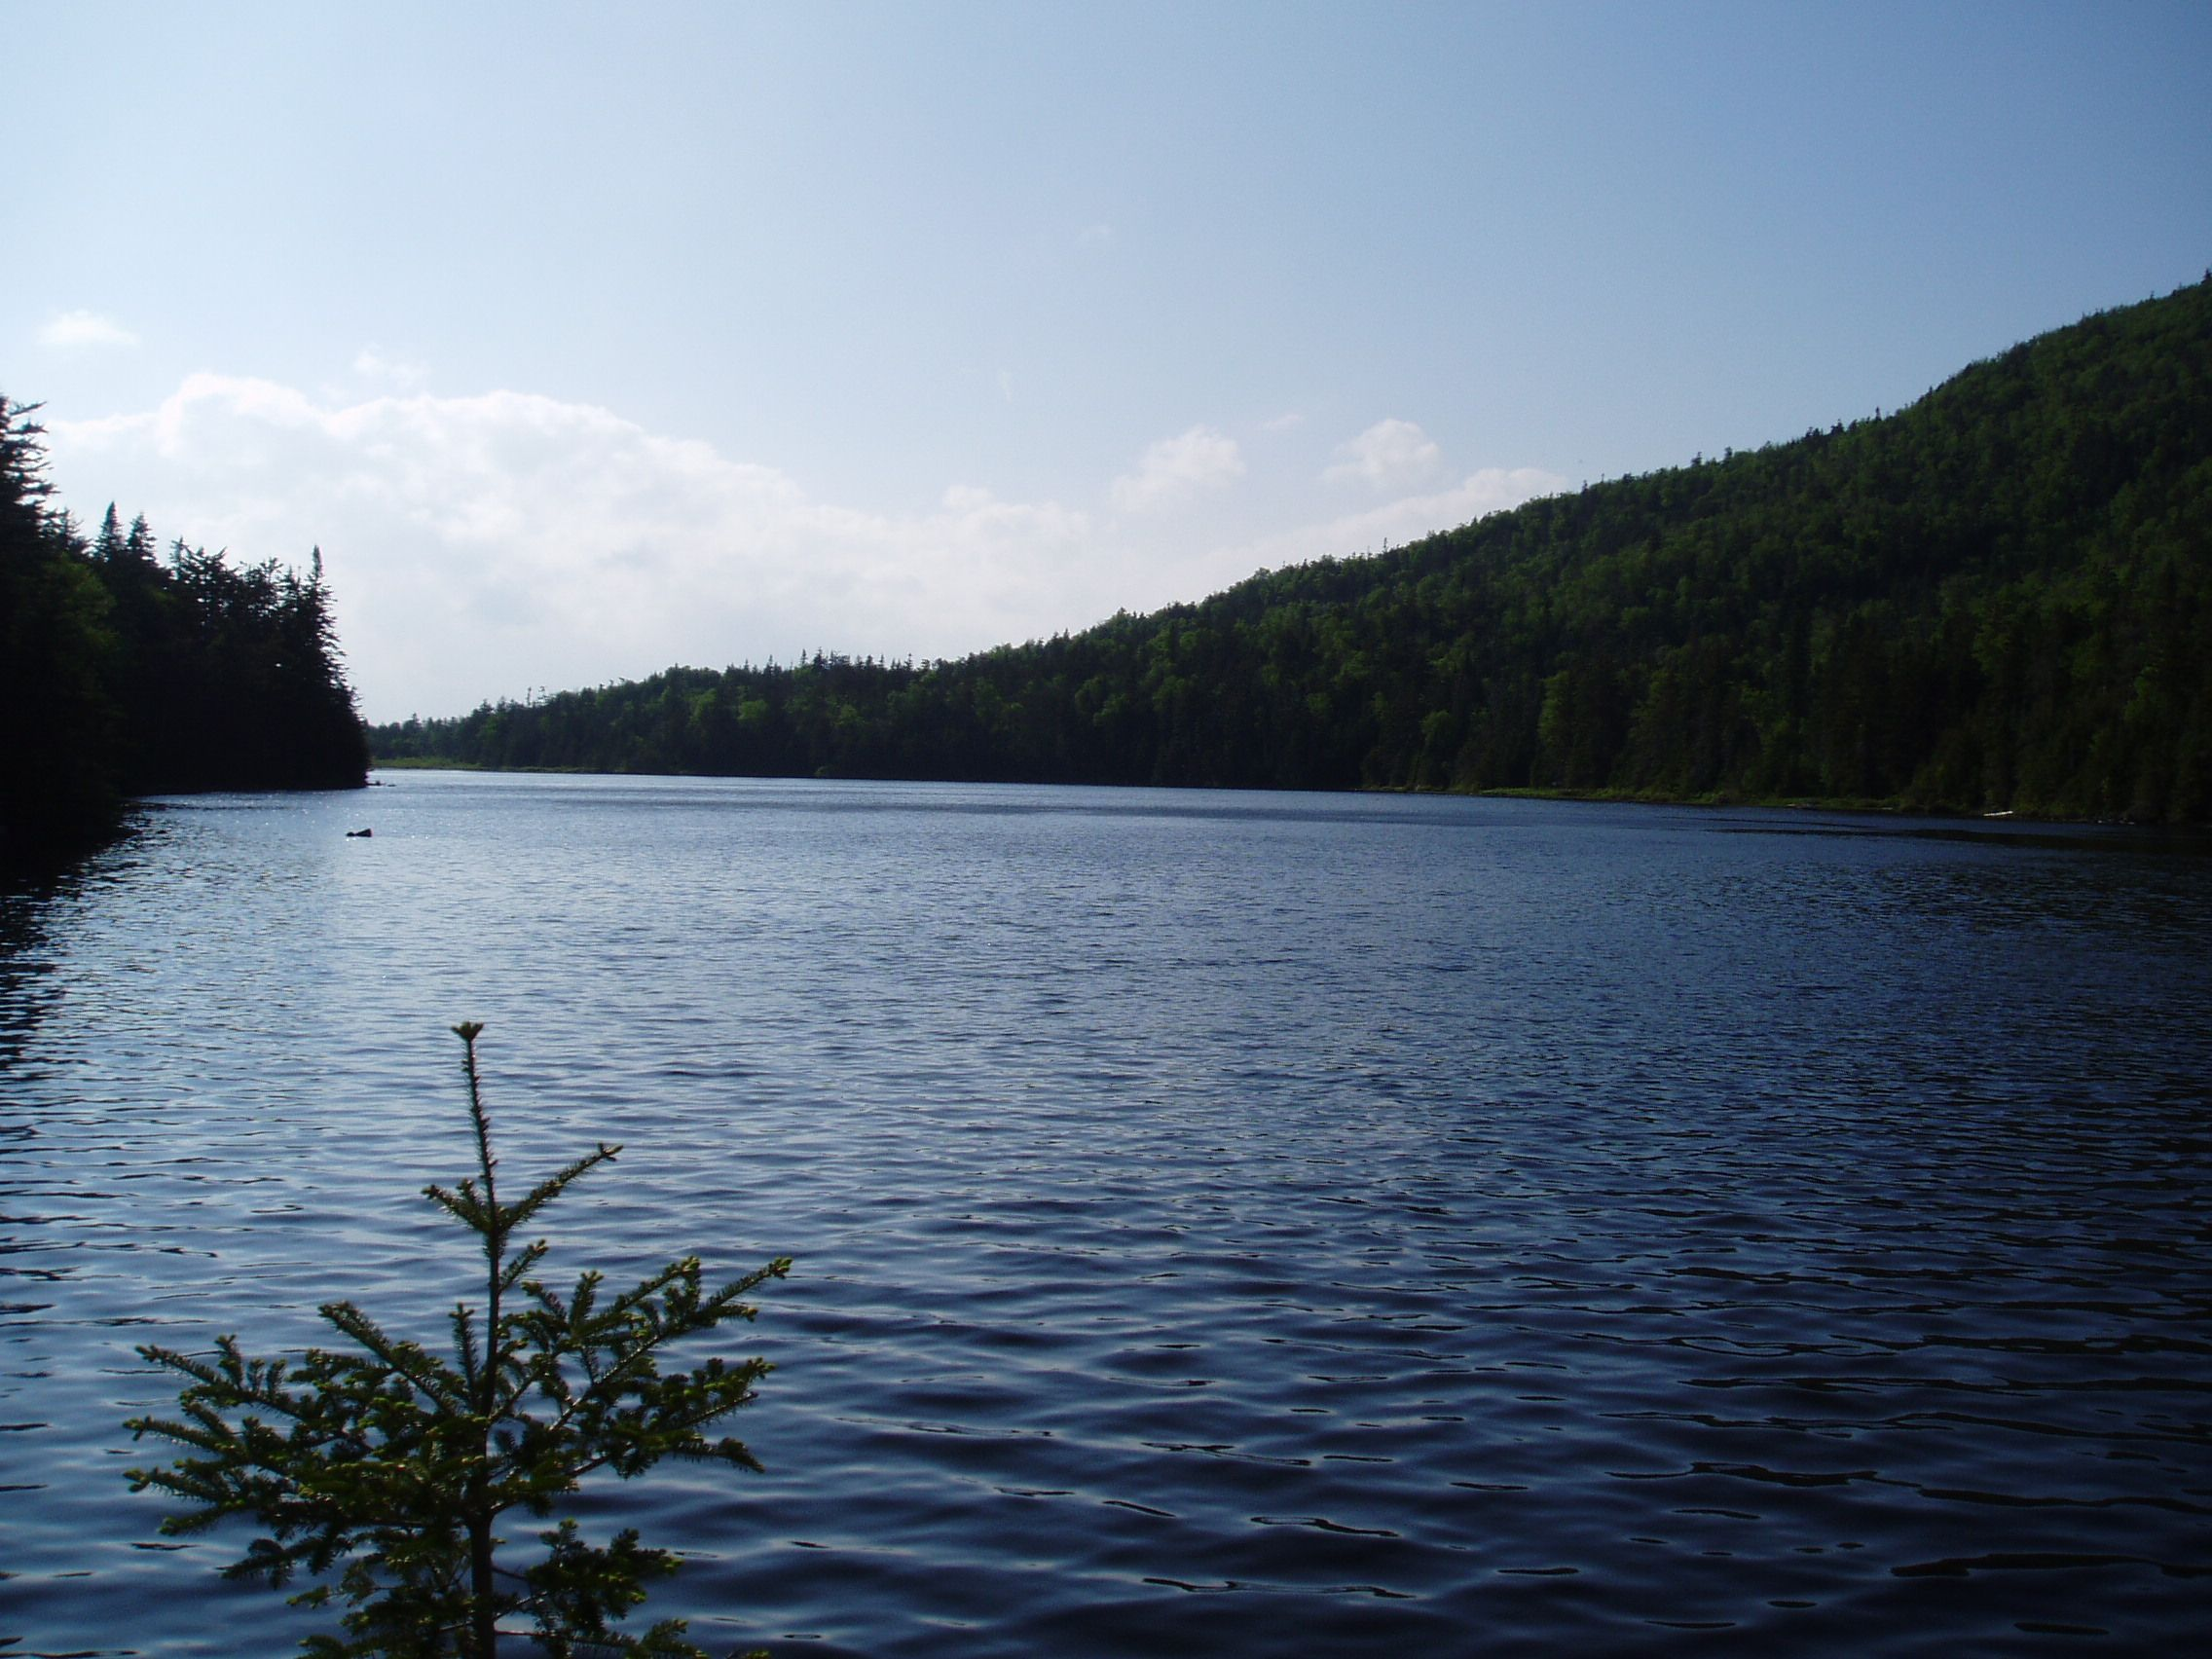 Boundary Pond in Pittsburg, NH is literally on the boundary of the US and Canada. This wonderfully remote pond is home to brook trout. Visit or fish this pond while vacationing at Lopstick Lodge, overlooking First Connecticut Lake in Pittsburg. http://www.cabinsatlopstick.com